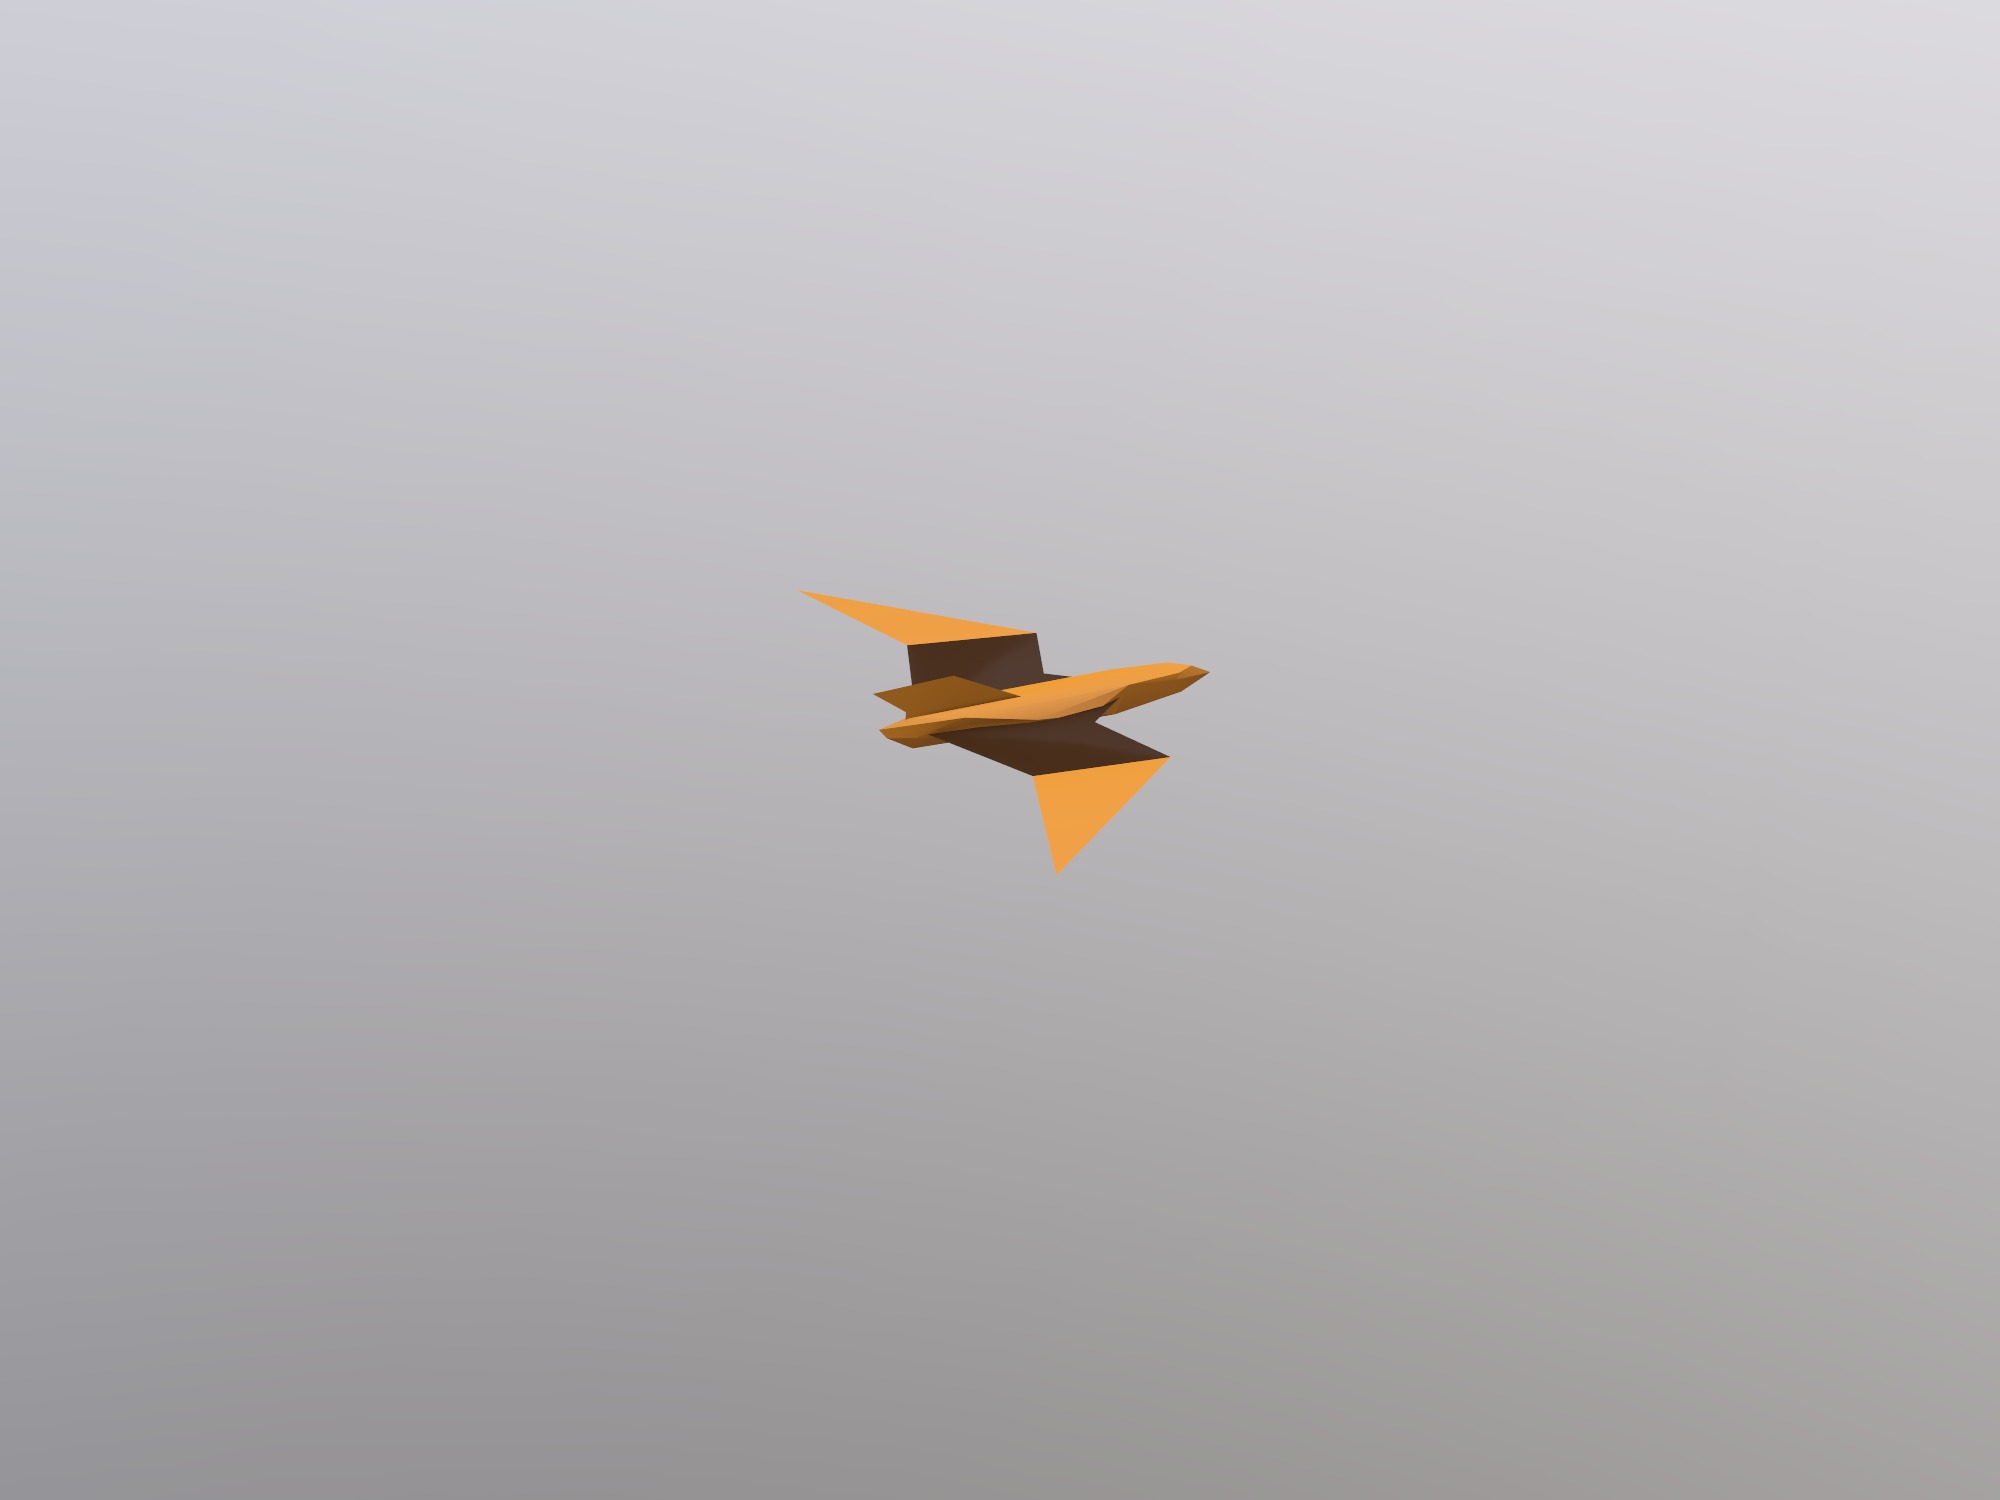 a jet thing - 3D design by smithcor Sep 28, 2018